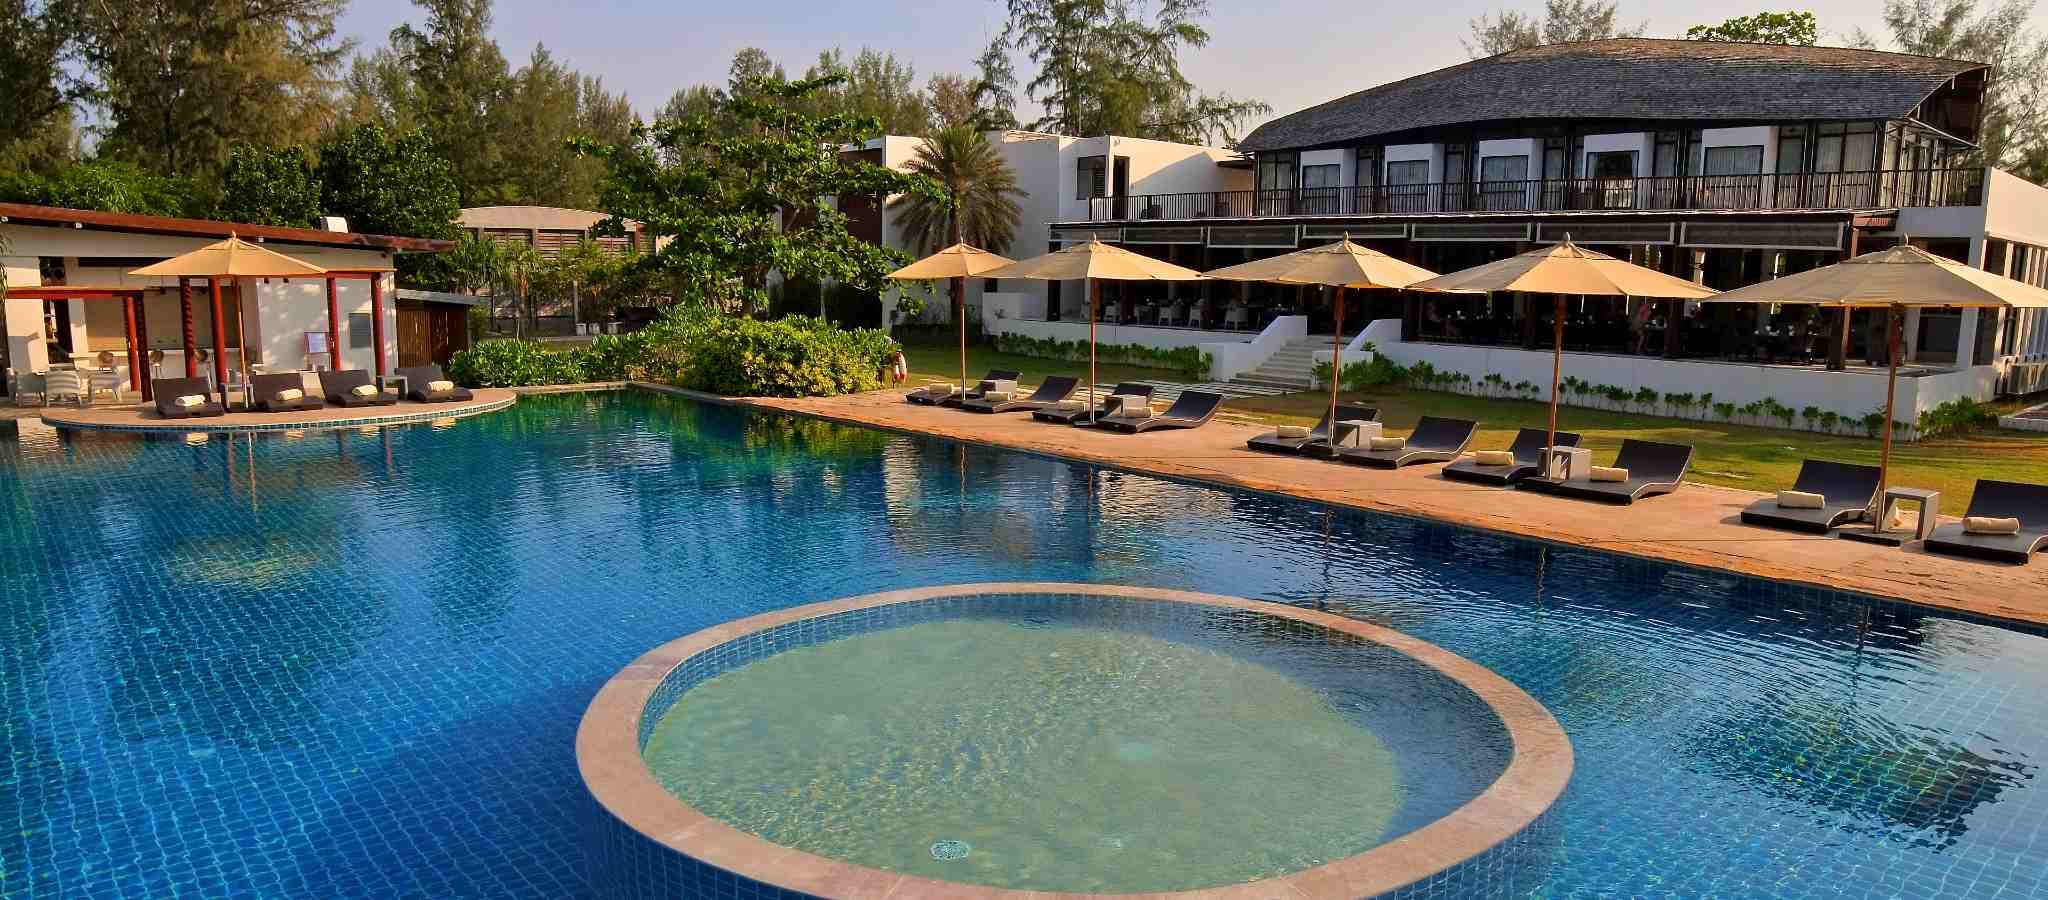 Twin Lotus, Hotel with pool in Koh Lanta in Thailand